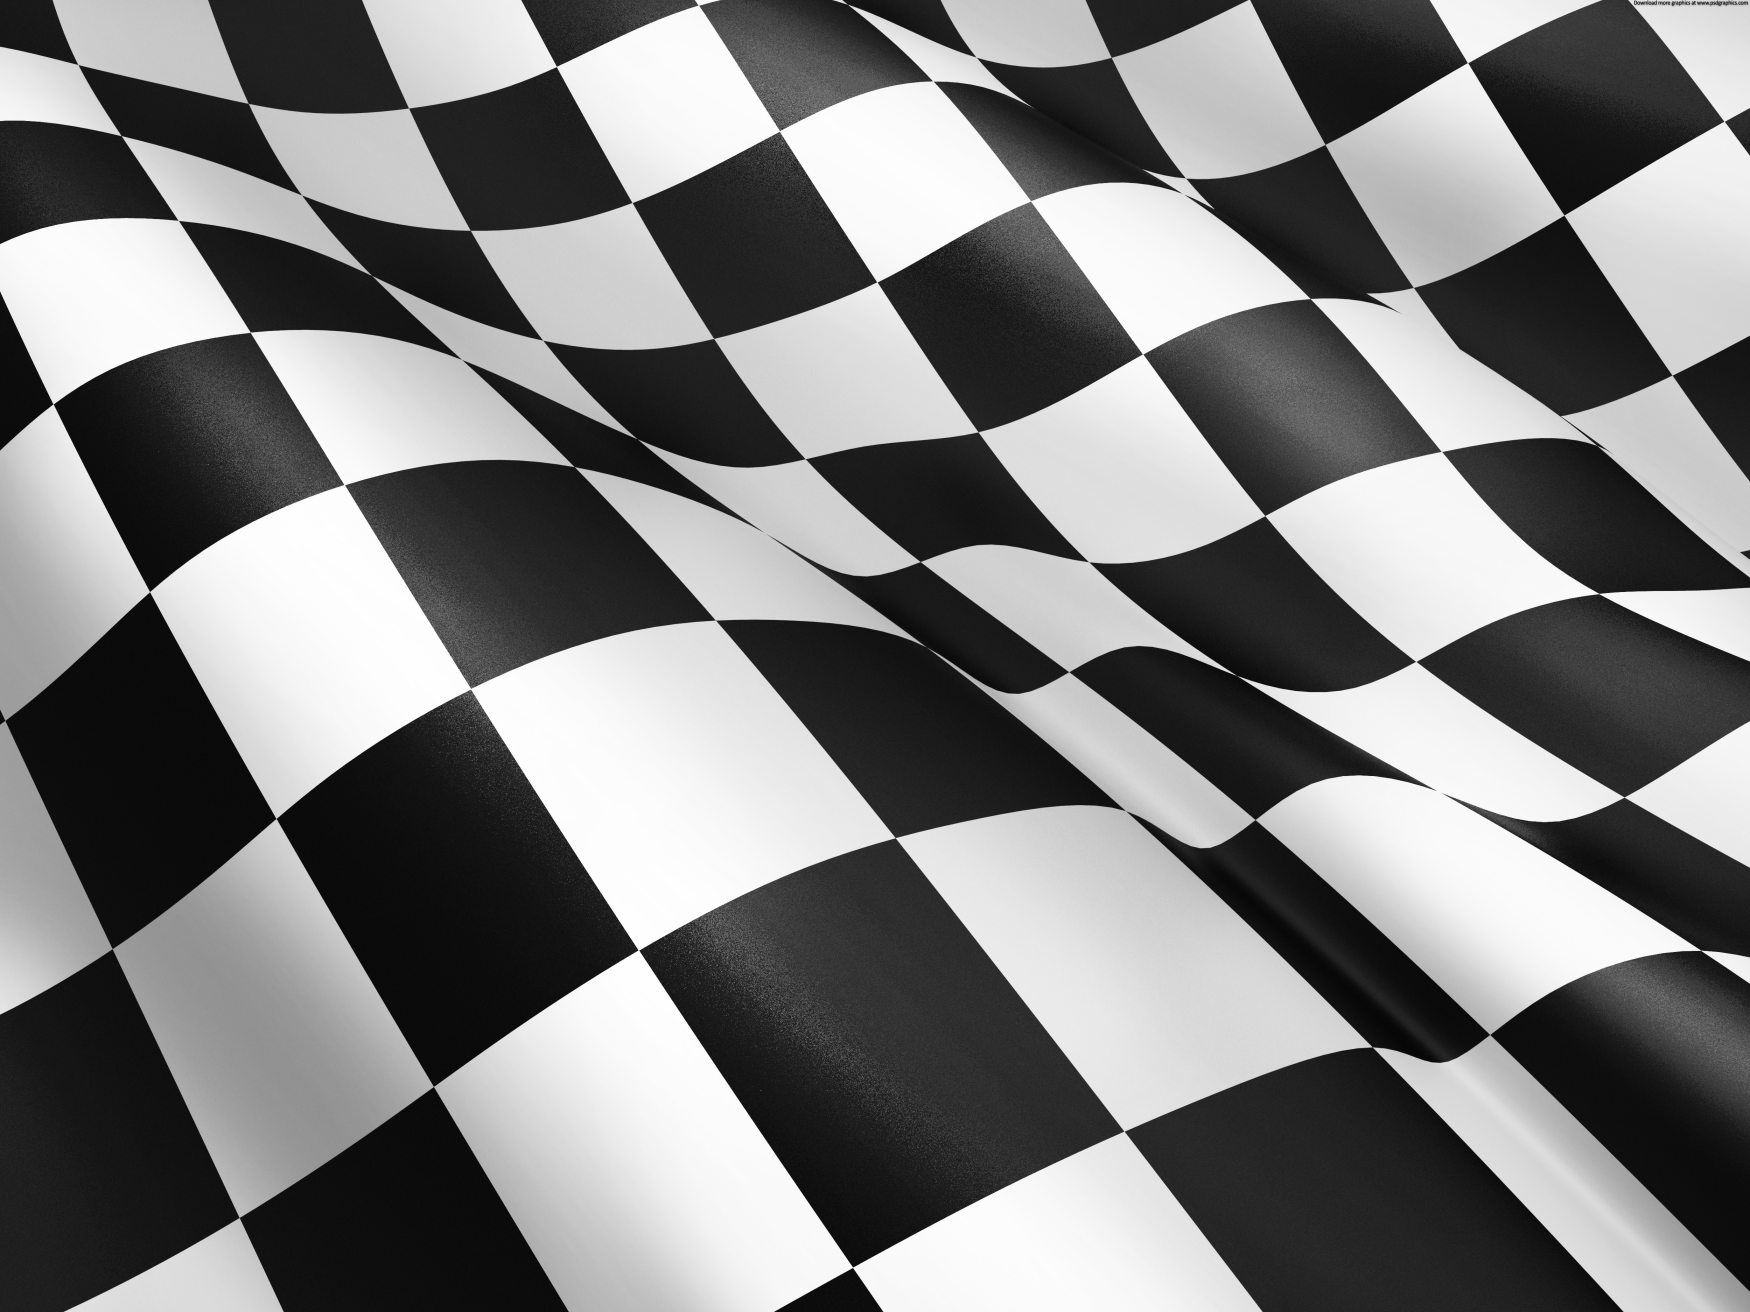 Checkered Flag Checkered Flag Flag Background Flag Photo